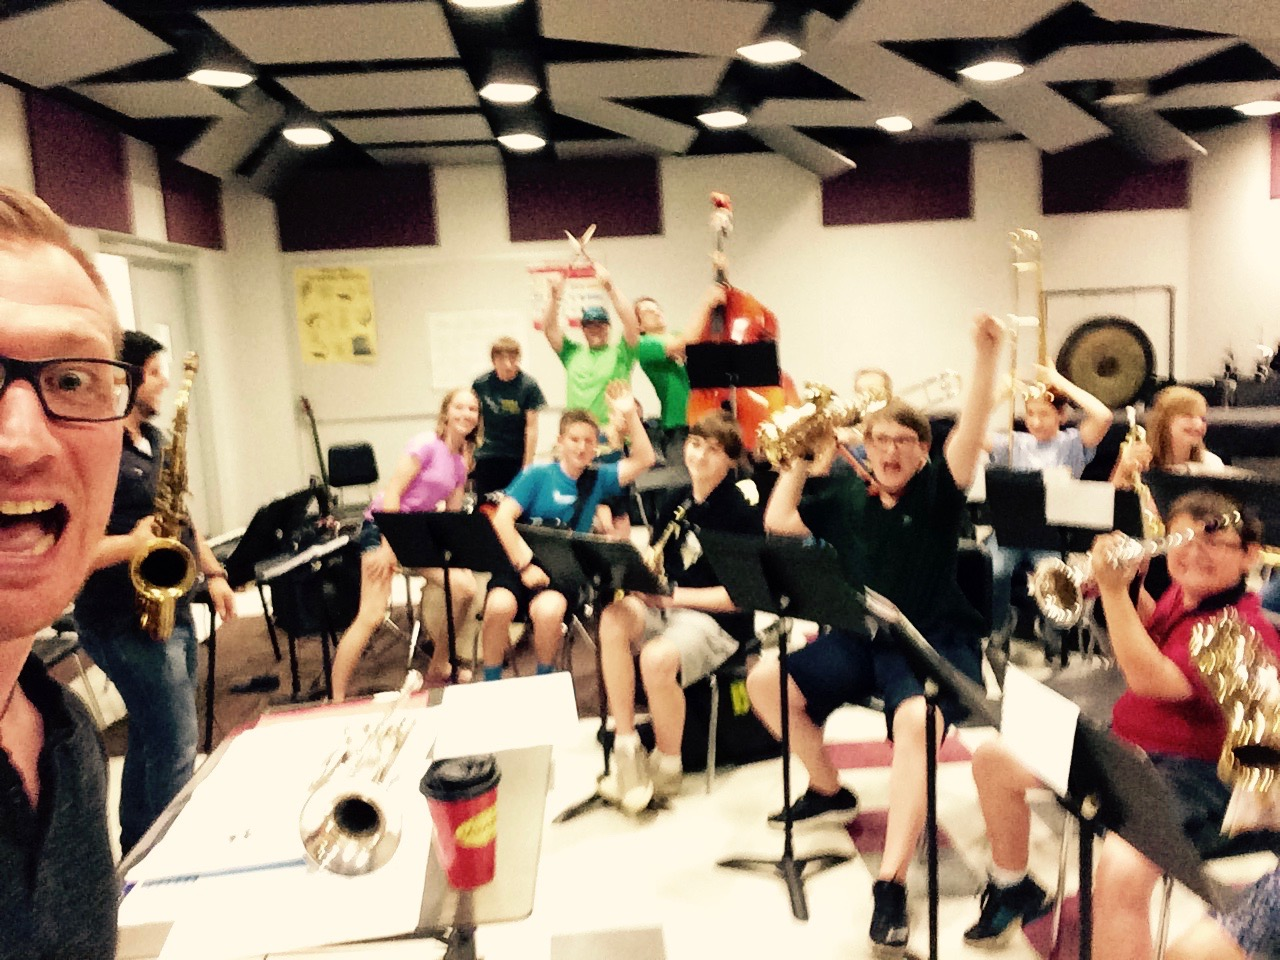 Ok kids, everyone act crazy! A great week with the students of the Kiski summer jazz camp